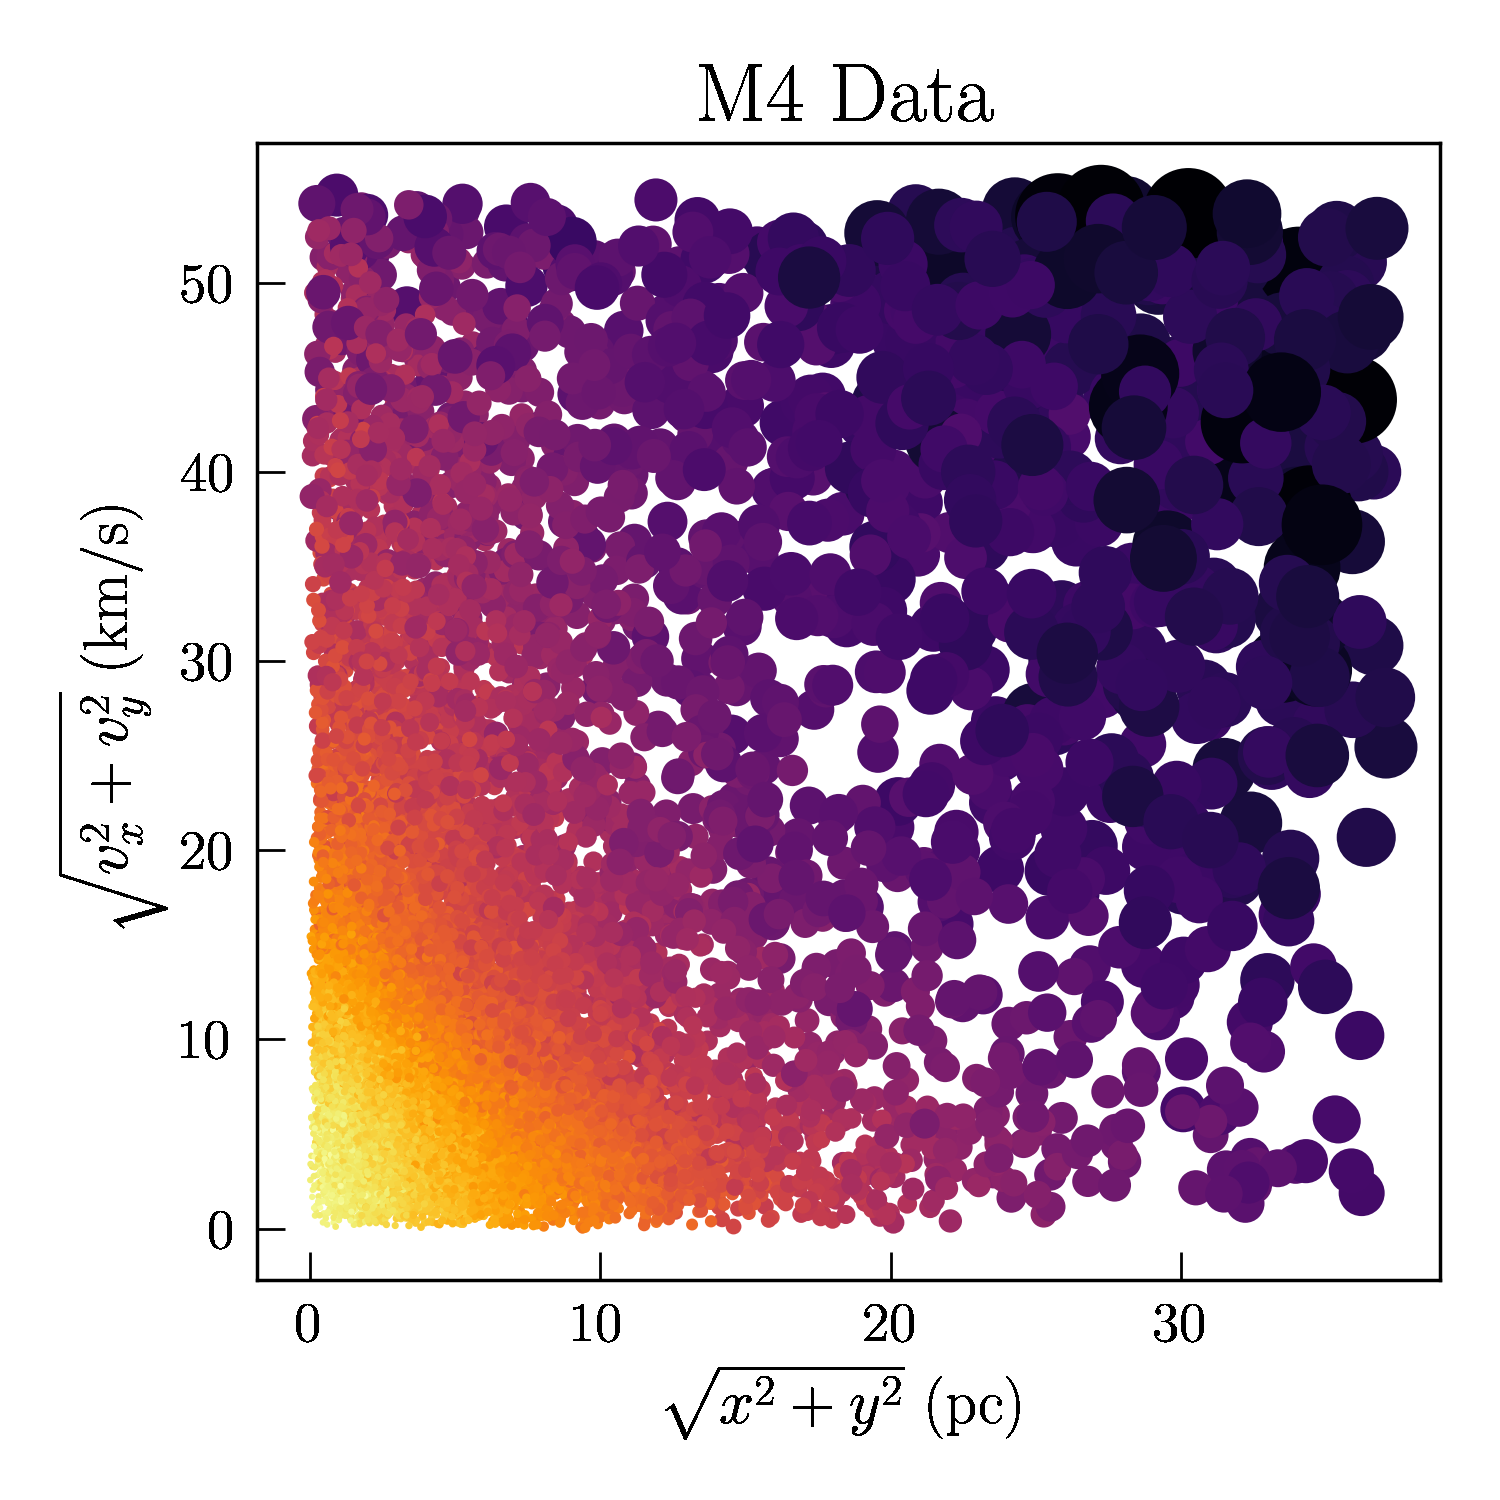 Stars in the Gaia data set for the M4  globular cluster. Color and size of each star represent the relative phase space-density (larger points are lower density).